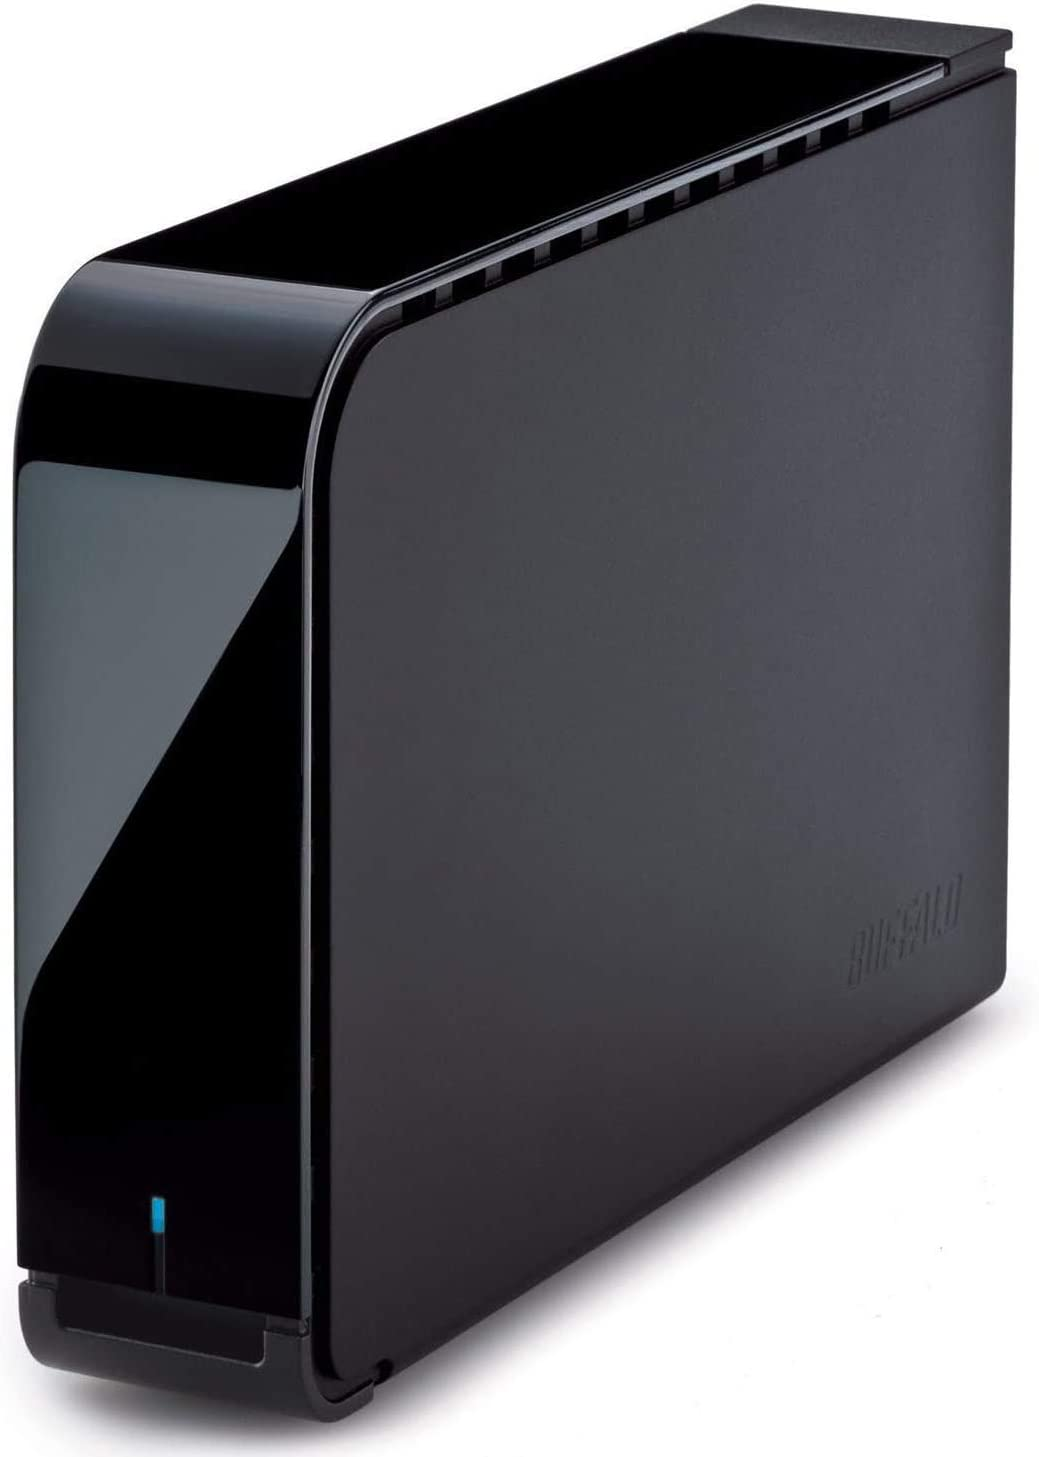 Buffalo DriveStation Axis Velocity High Speed External Hard Drive 1 TB